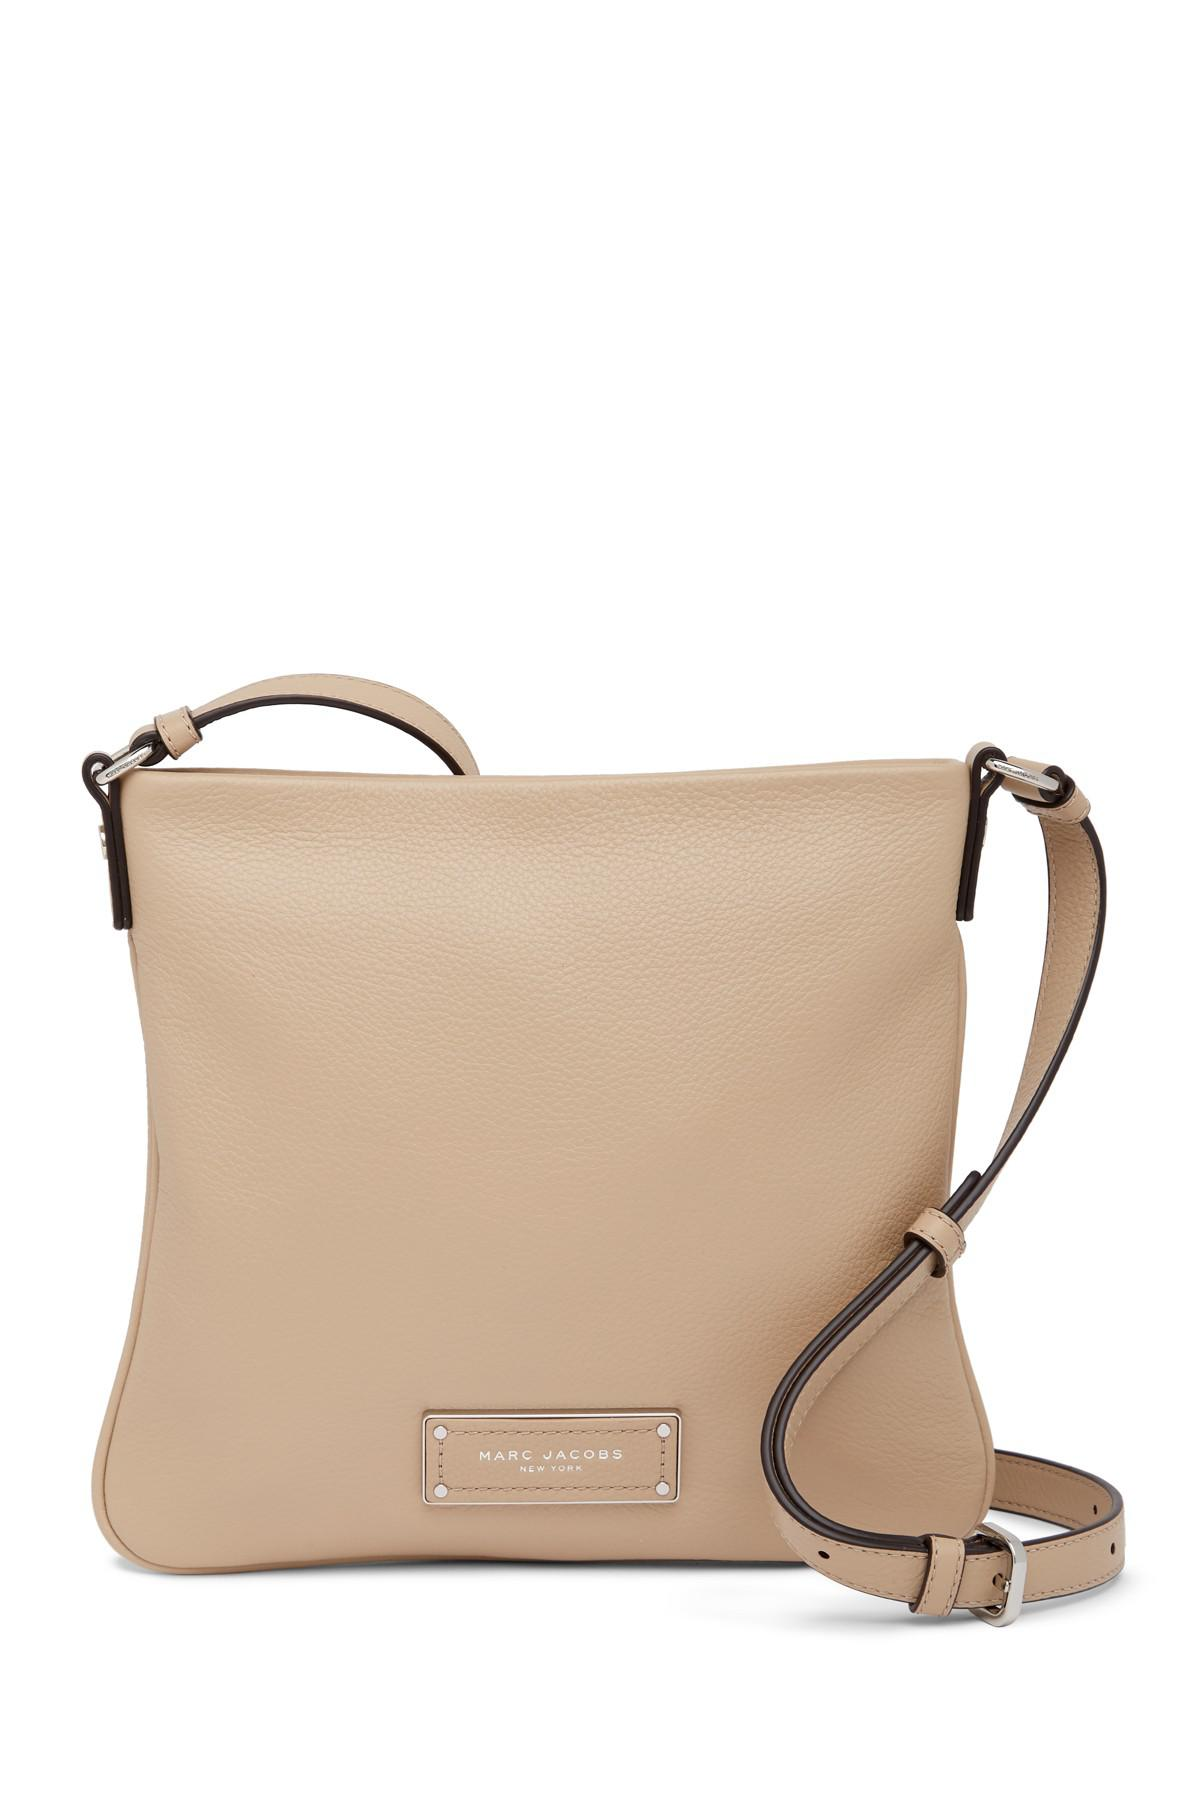 a8727fb83ff14 Lyst - Marc Jacobs Too Hot To Handle Sia Leather Crossbody Bag